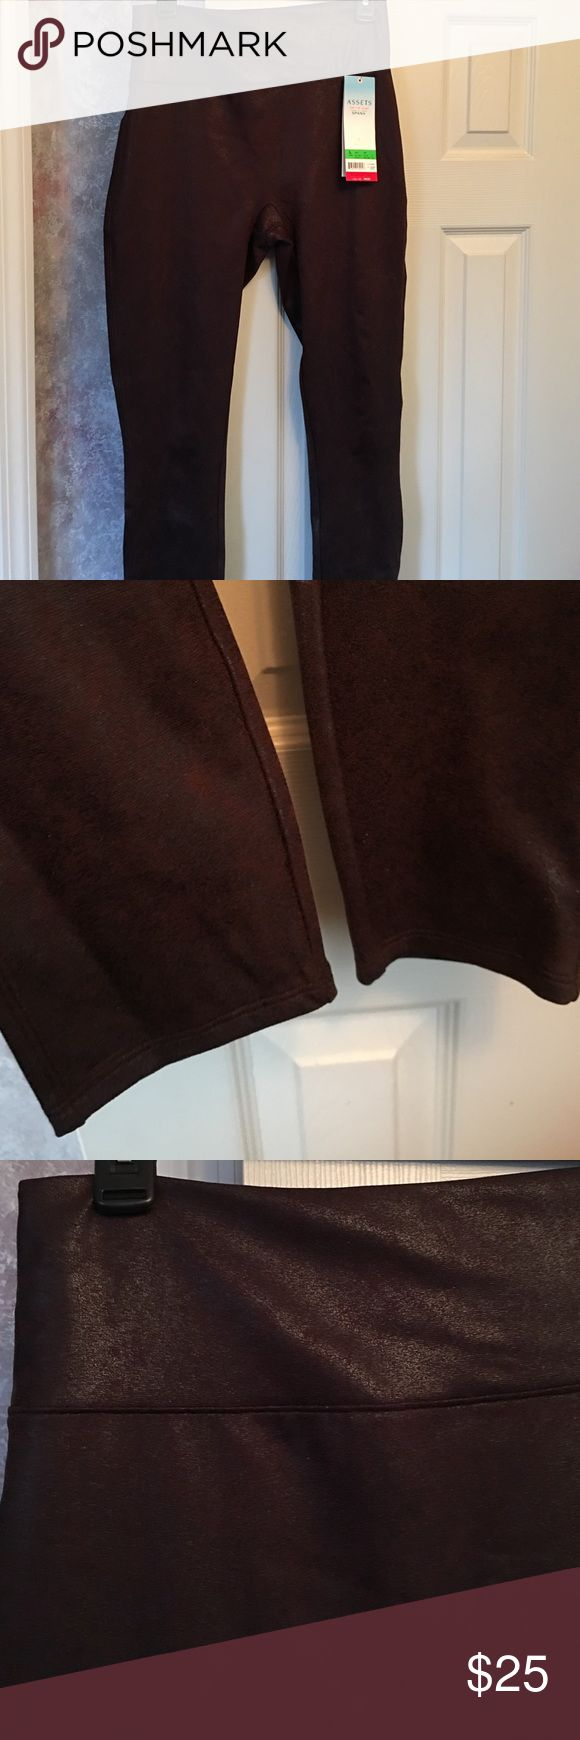 Spanx structured shine leggings size large BNWT Spanx structured shine leggings size large BNWT. Super comfortable and have lots of support in the waist band! Holds everything in. Super stretchy and great for any occasion! Color is maroon. ❌No trades SPANX Pants Leggings